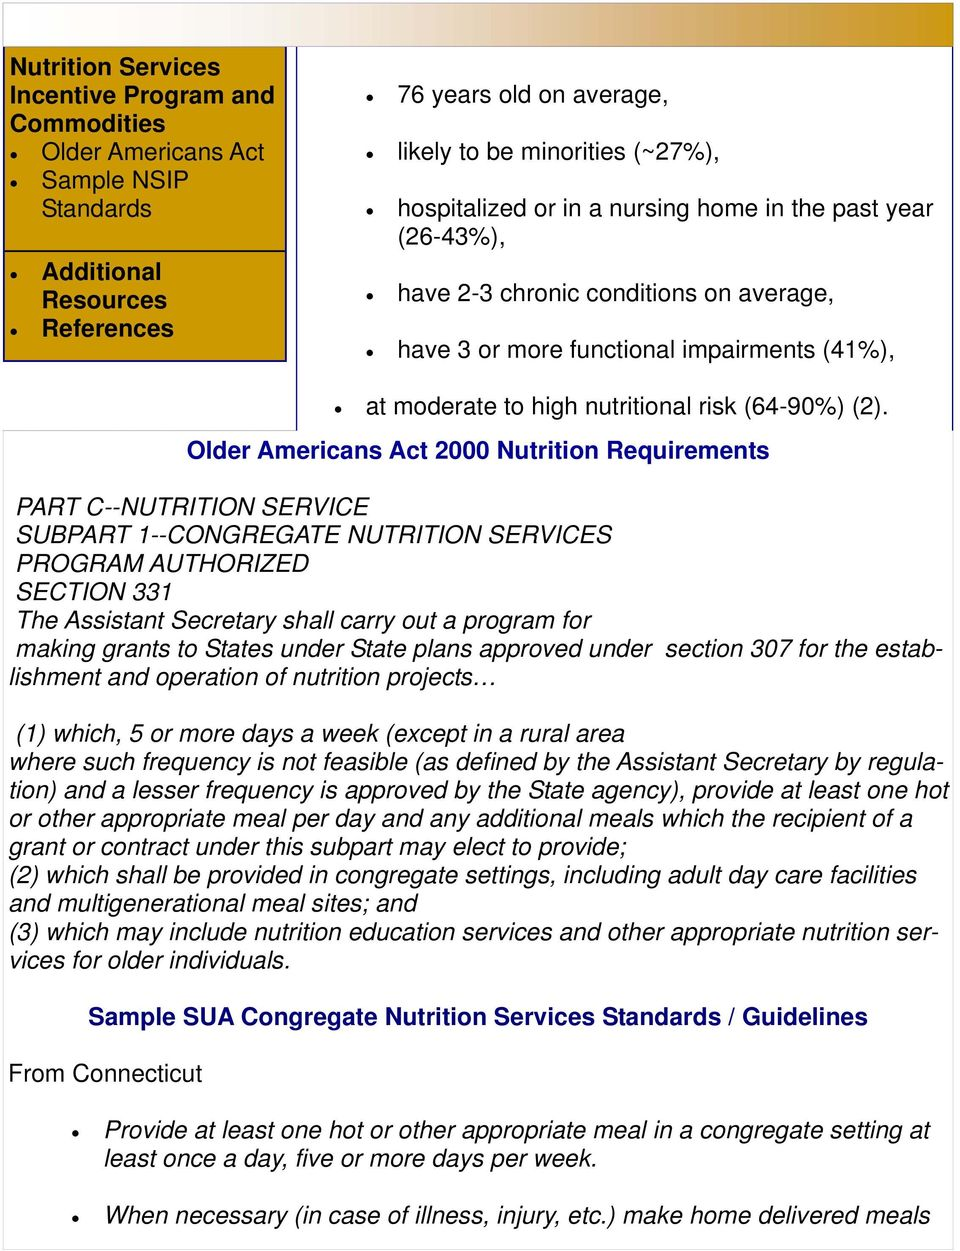 SERVICE SUBPART 1--CONGREGATE NUTRITION SERVICES PROGRAM AUTHORIZED SECTION 331 The Assistant Secretary shall carry out a program for making grants to States under State plans approved under section